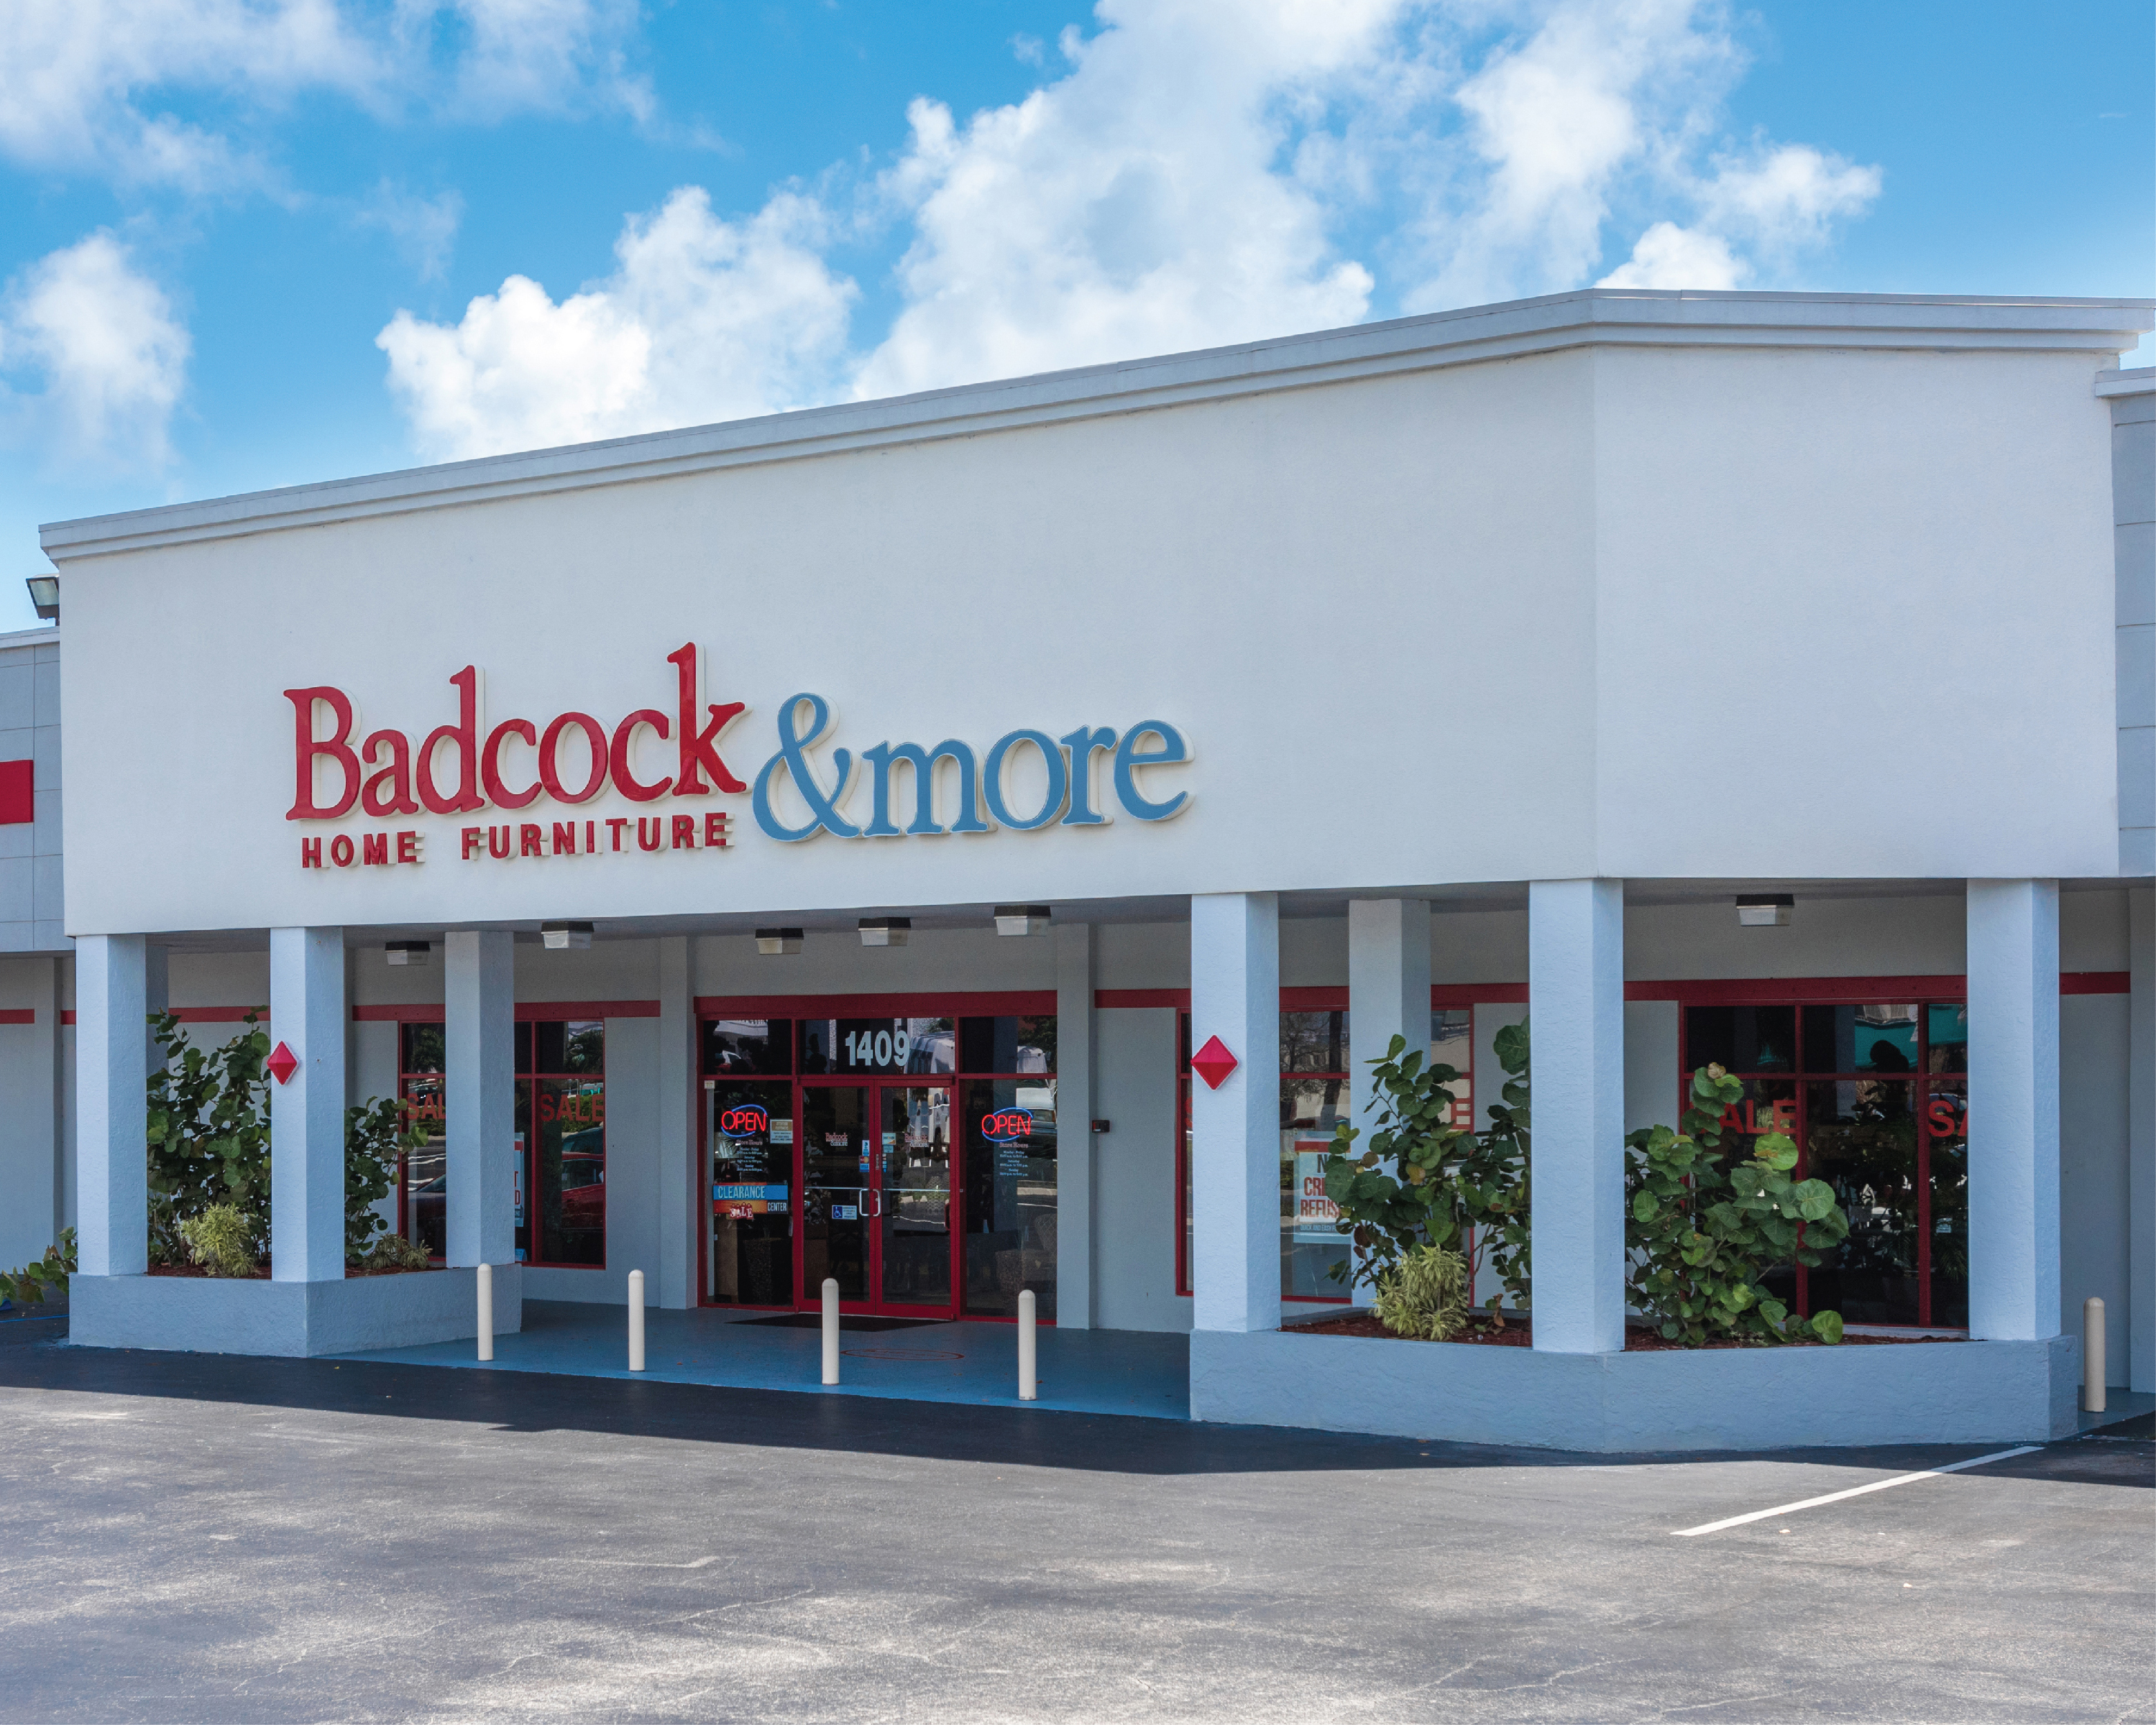 Badcock home furniture more 1409 10th st lake park fl 33403 Badcock home furniture more corporate office